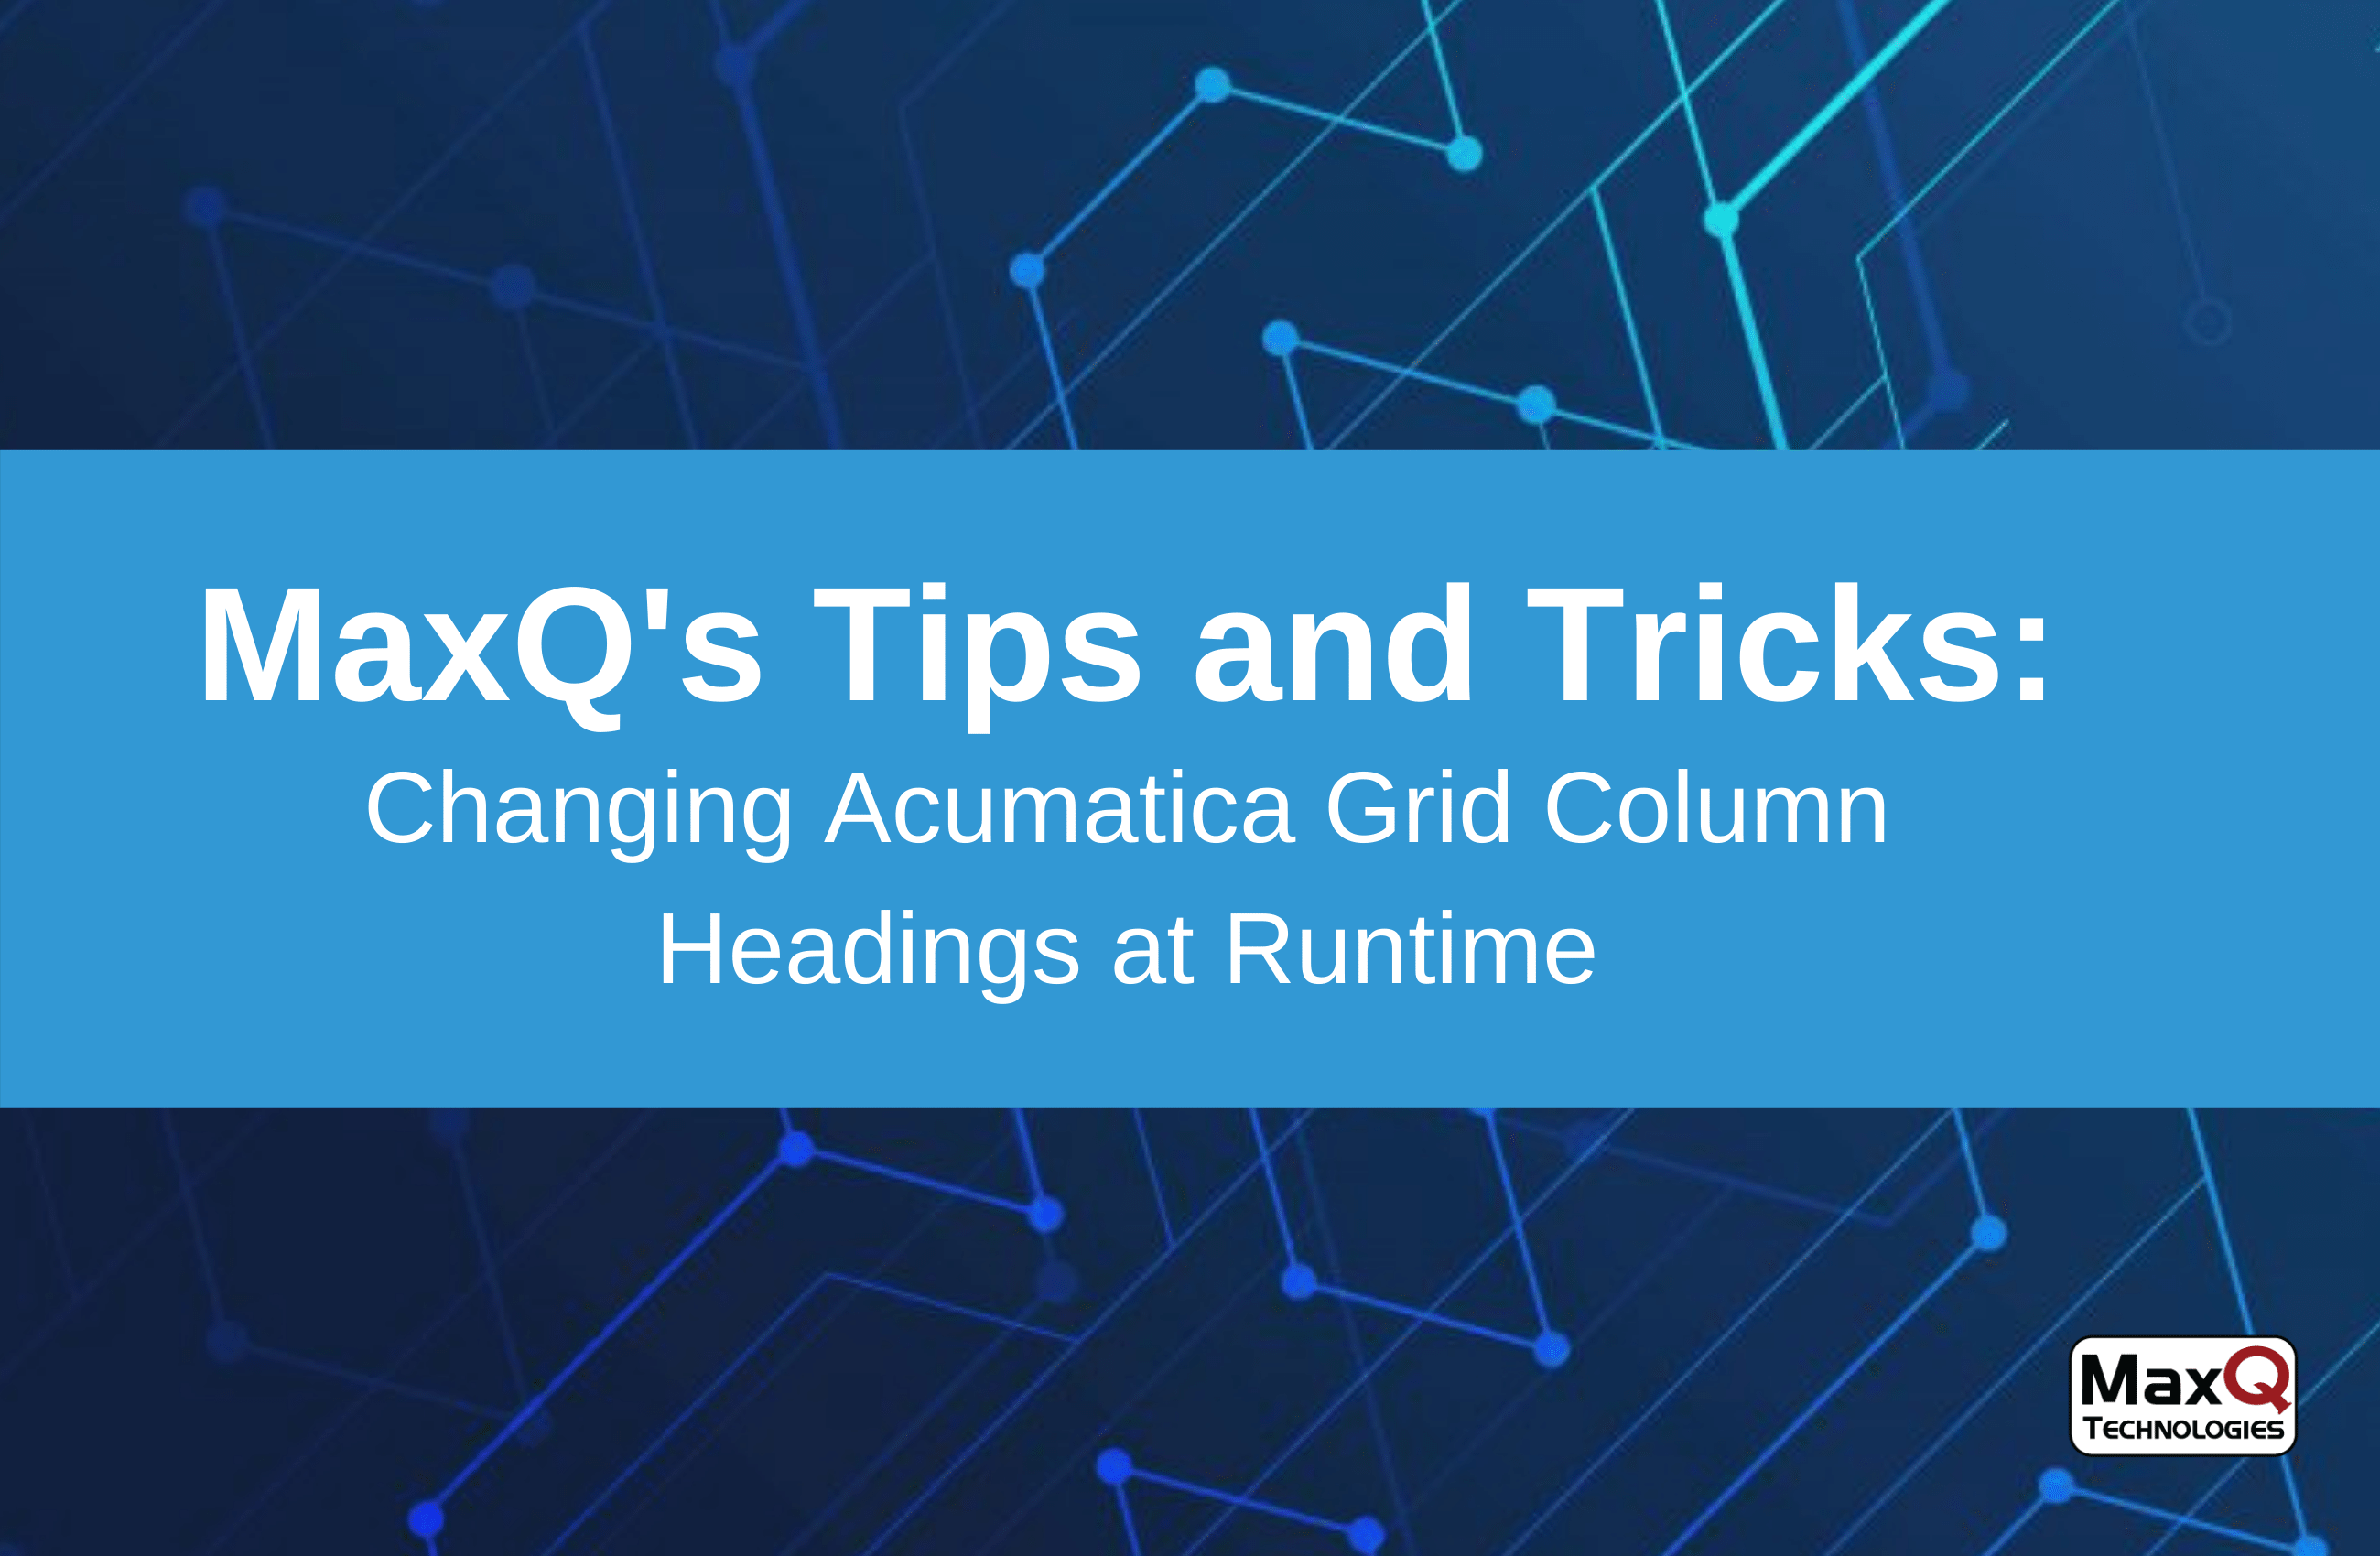 Changing Acumatica Grid Column Headings at Runtime